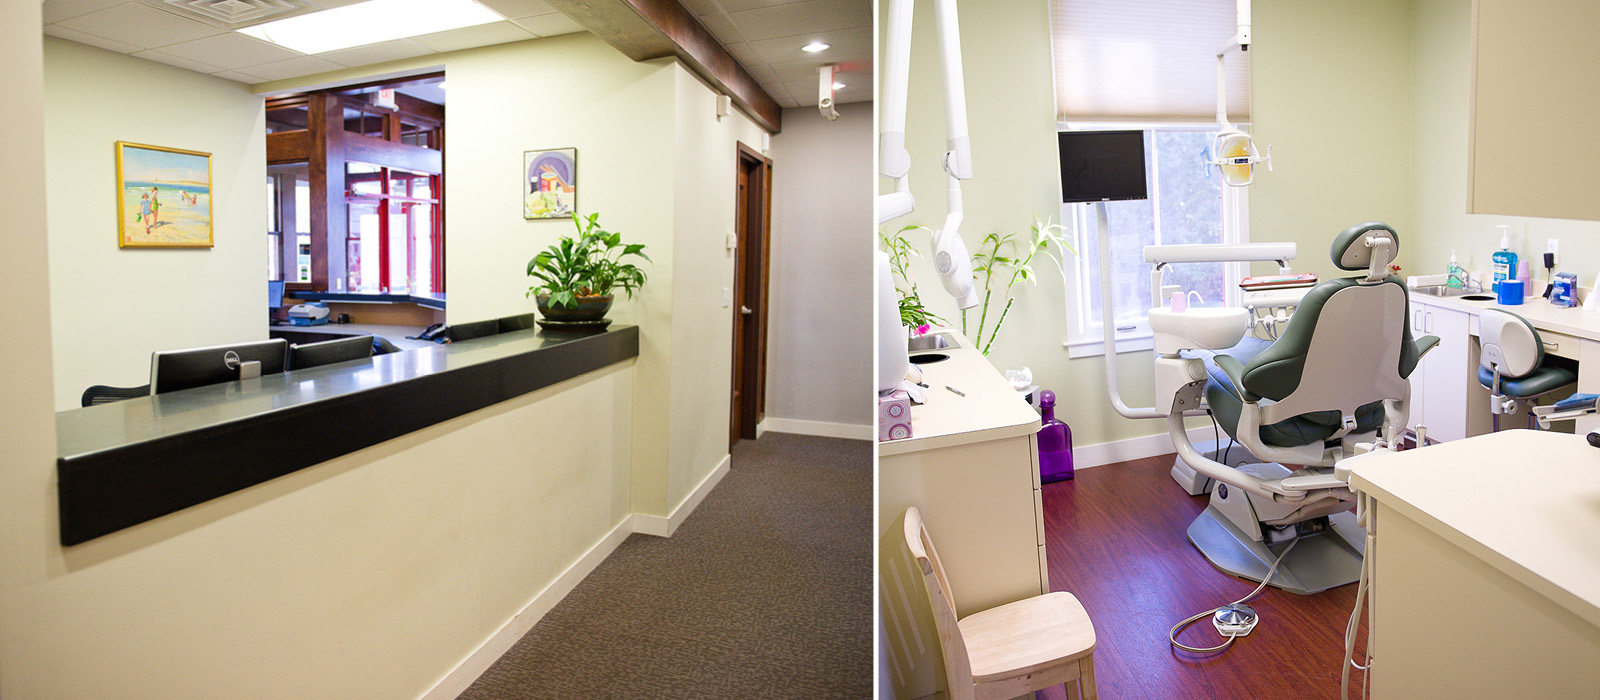 Paquette Family Dental front desk and treatment room